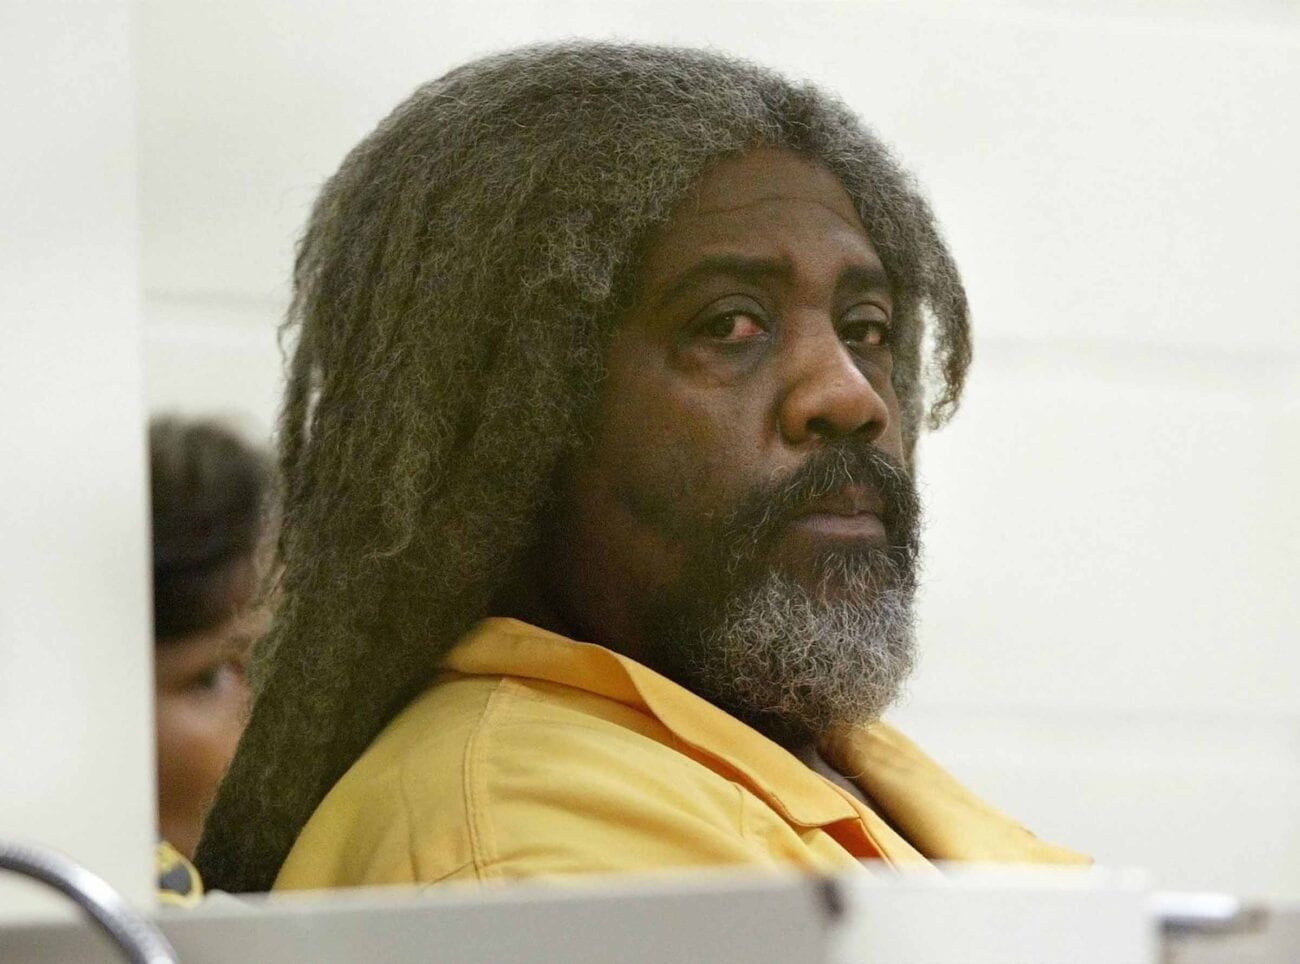 Marcus Wesson is currently in a state prison awaiting the death sentence given to him in 2005. Here's everything we know about Marcus Wesson.